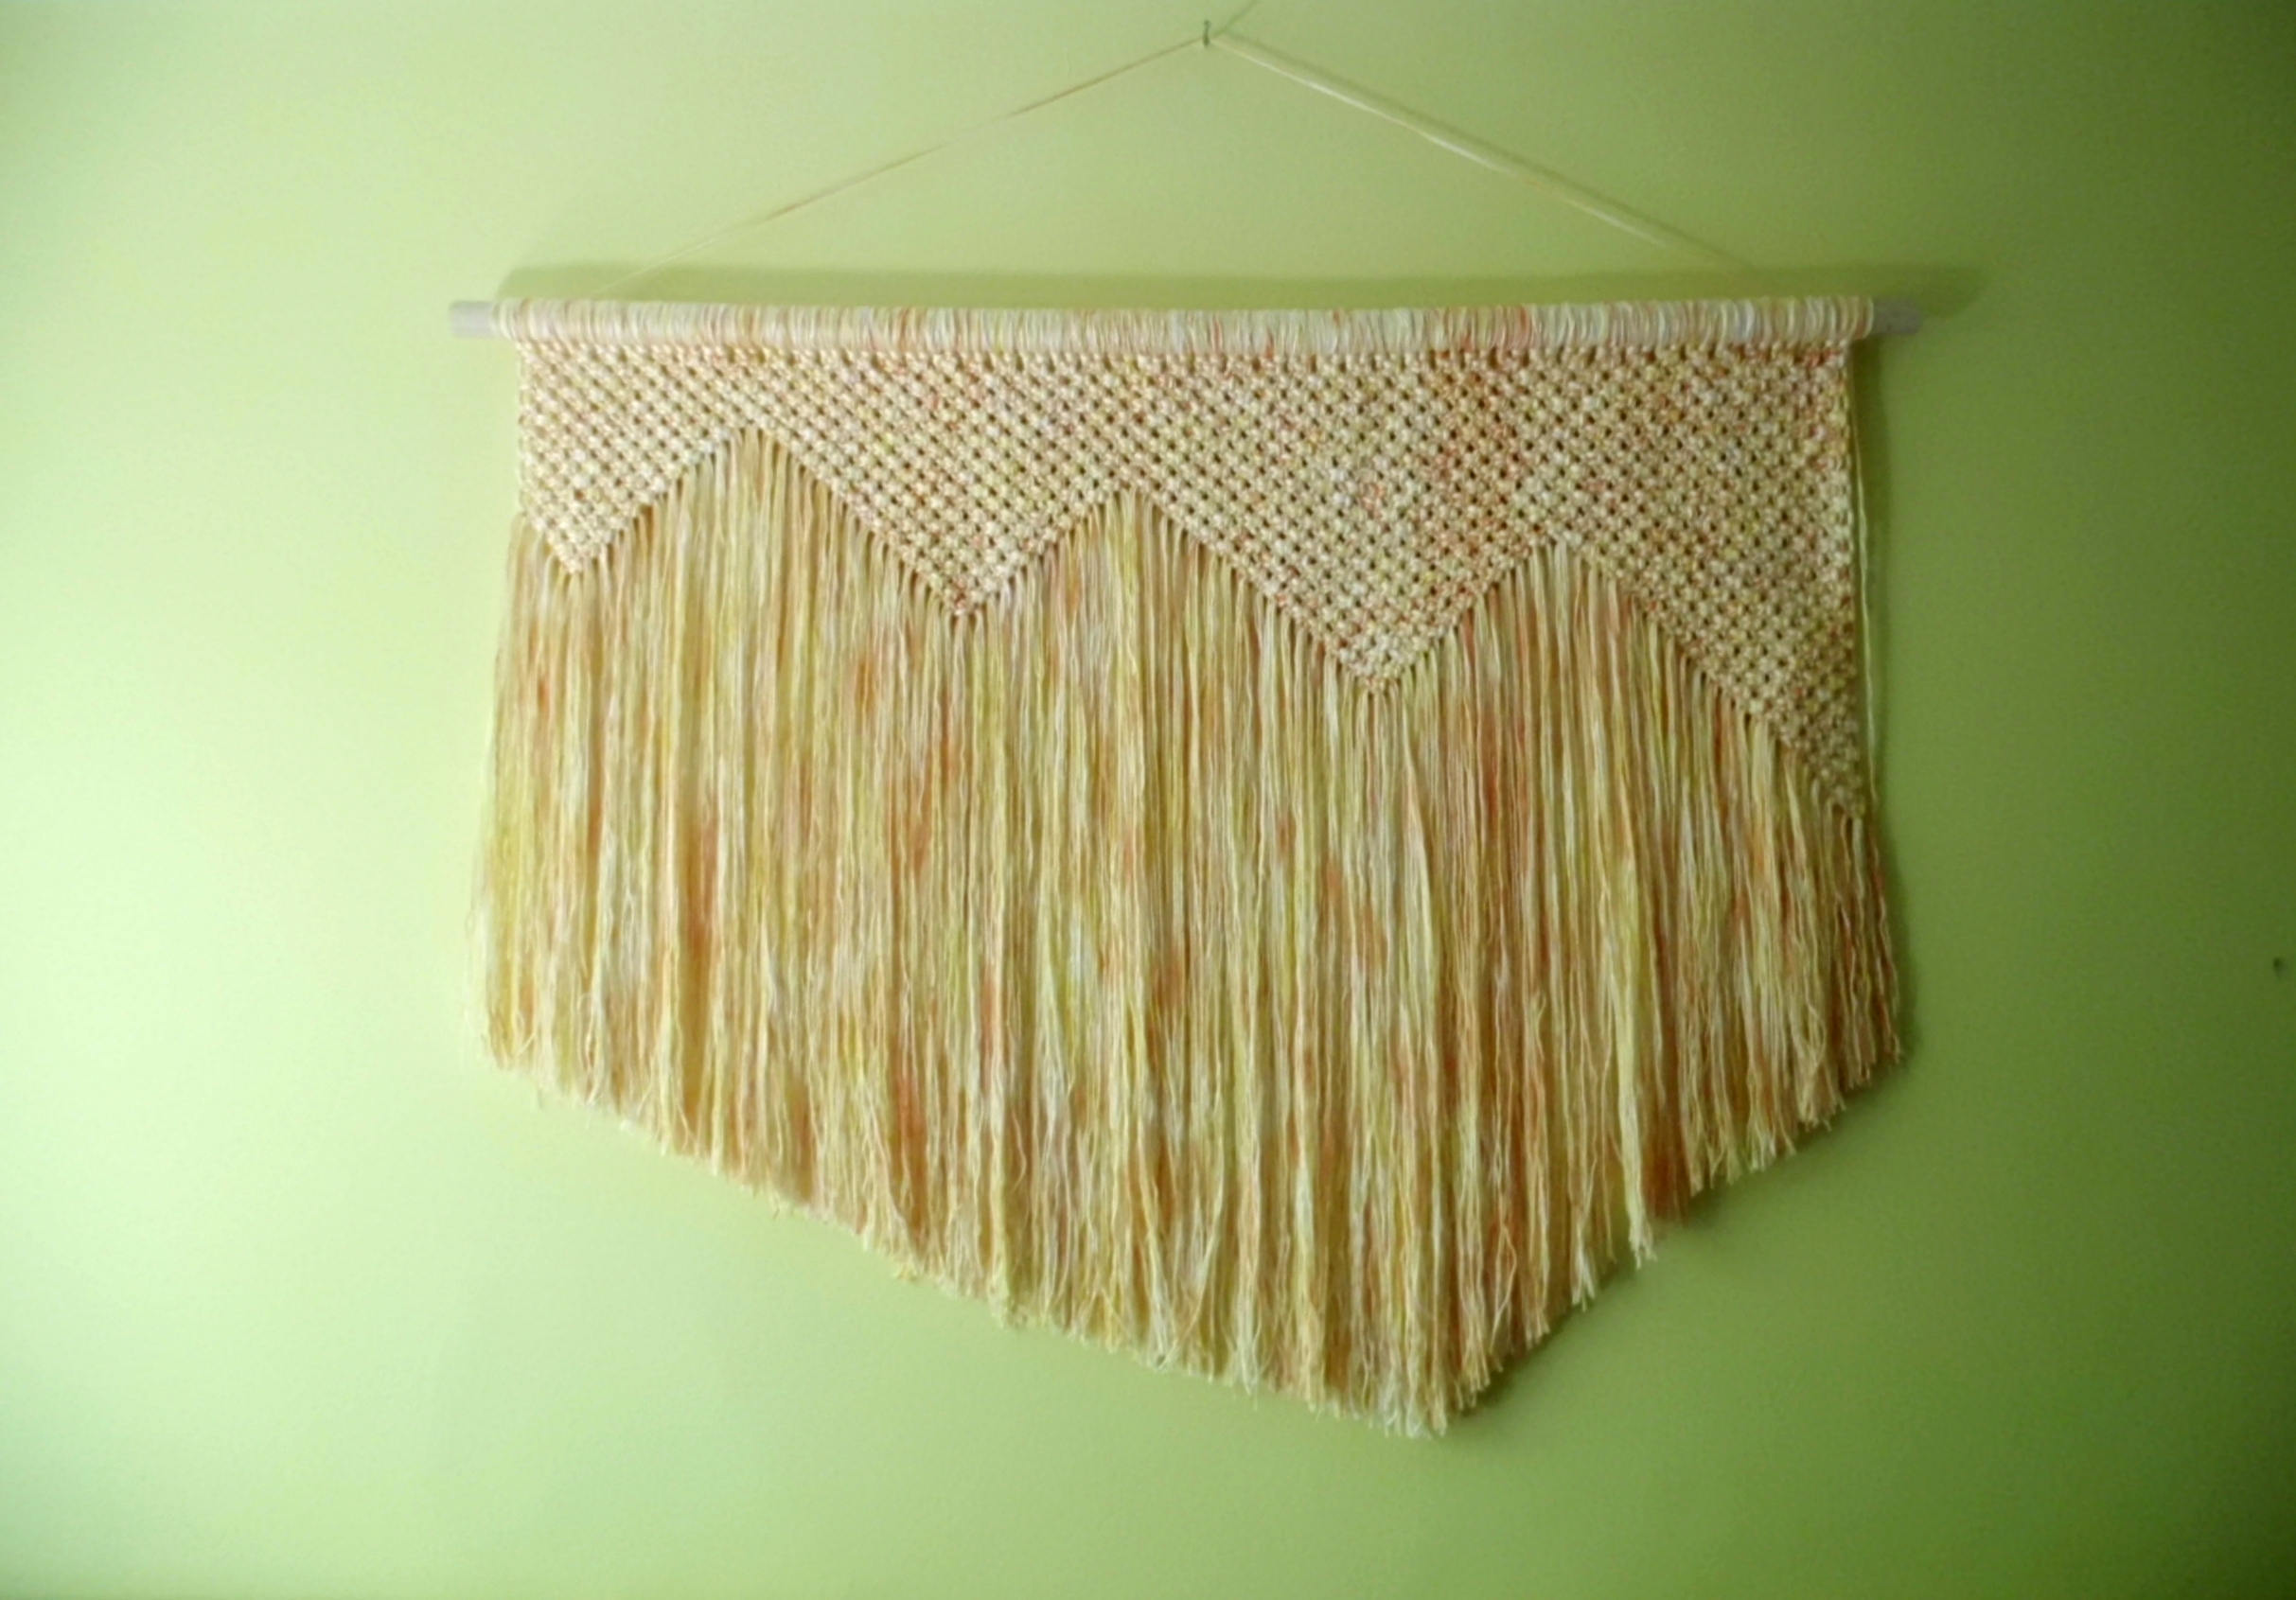 Cool Yarn Wall Decor Pictures Inspiration - The Wall Art ...